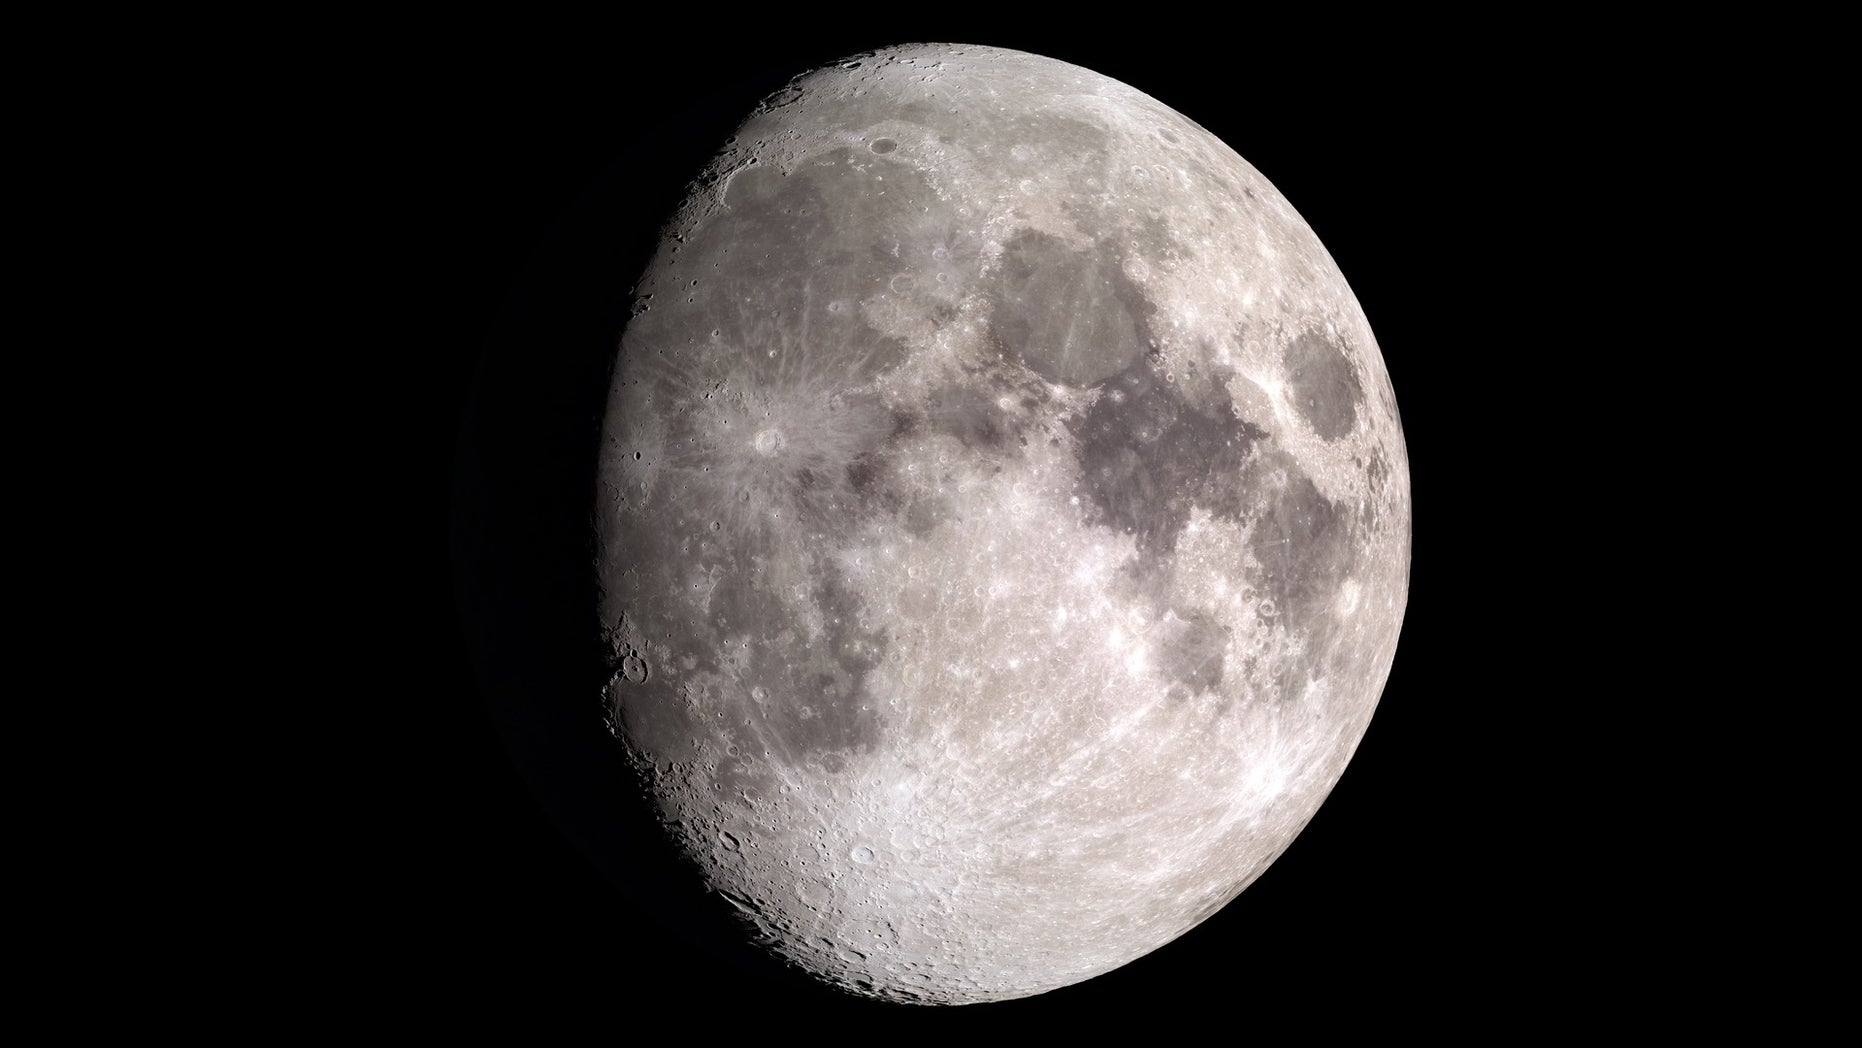 The moon is depauperate in bullion and other rarely siderophile elements compared to Earth, and we might now know why.